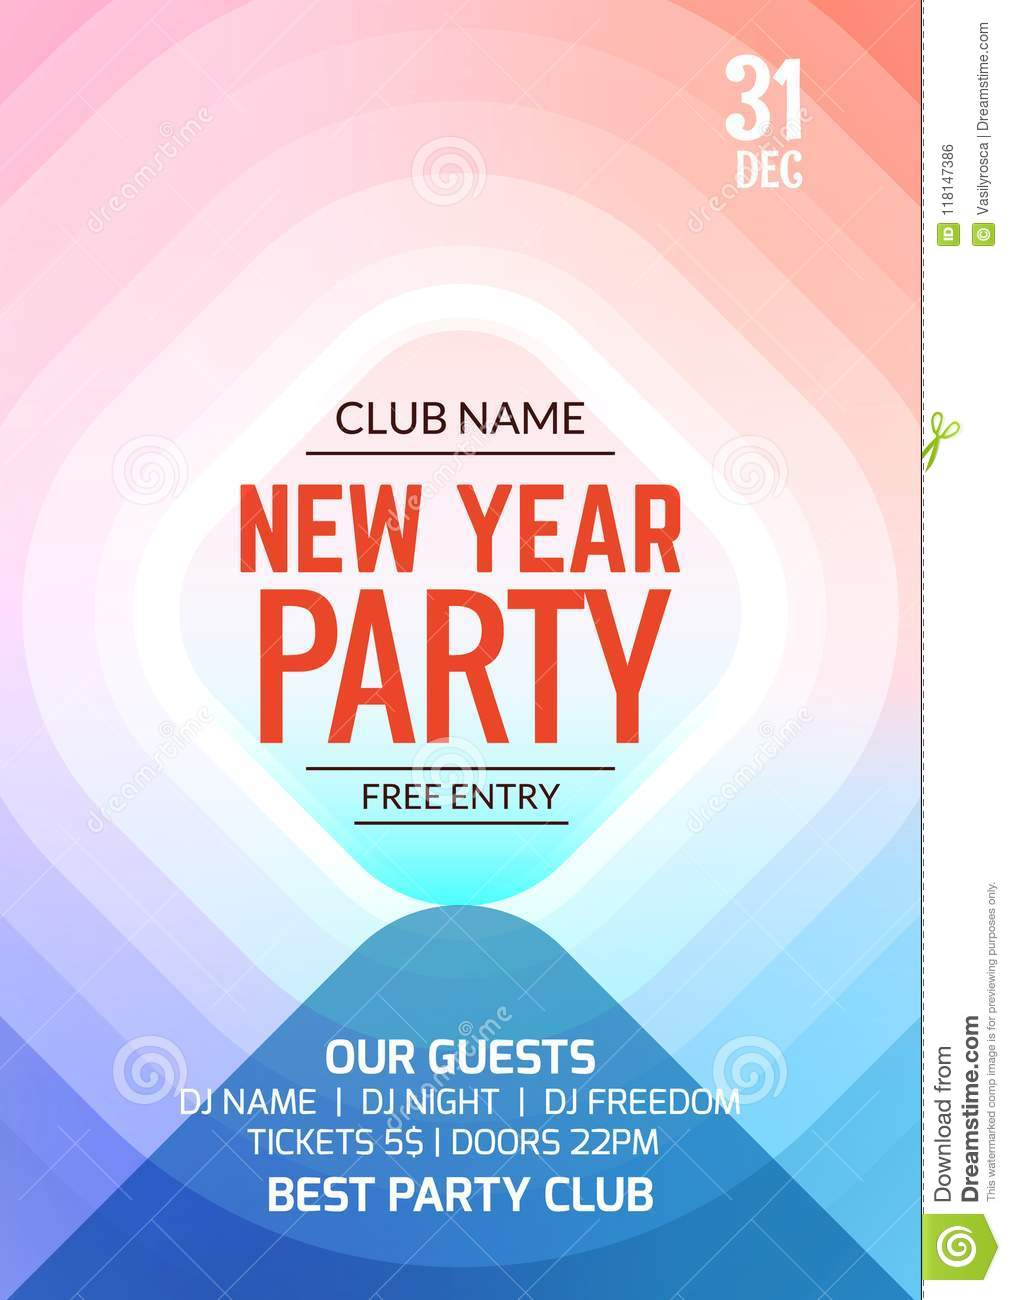 new year party flyer design template banner poster new year event disco club